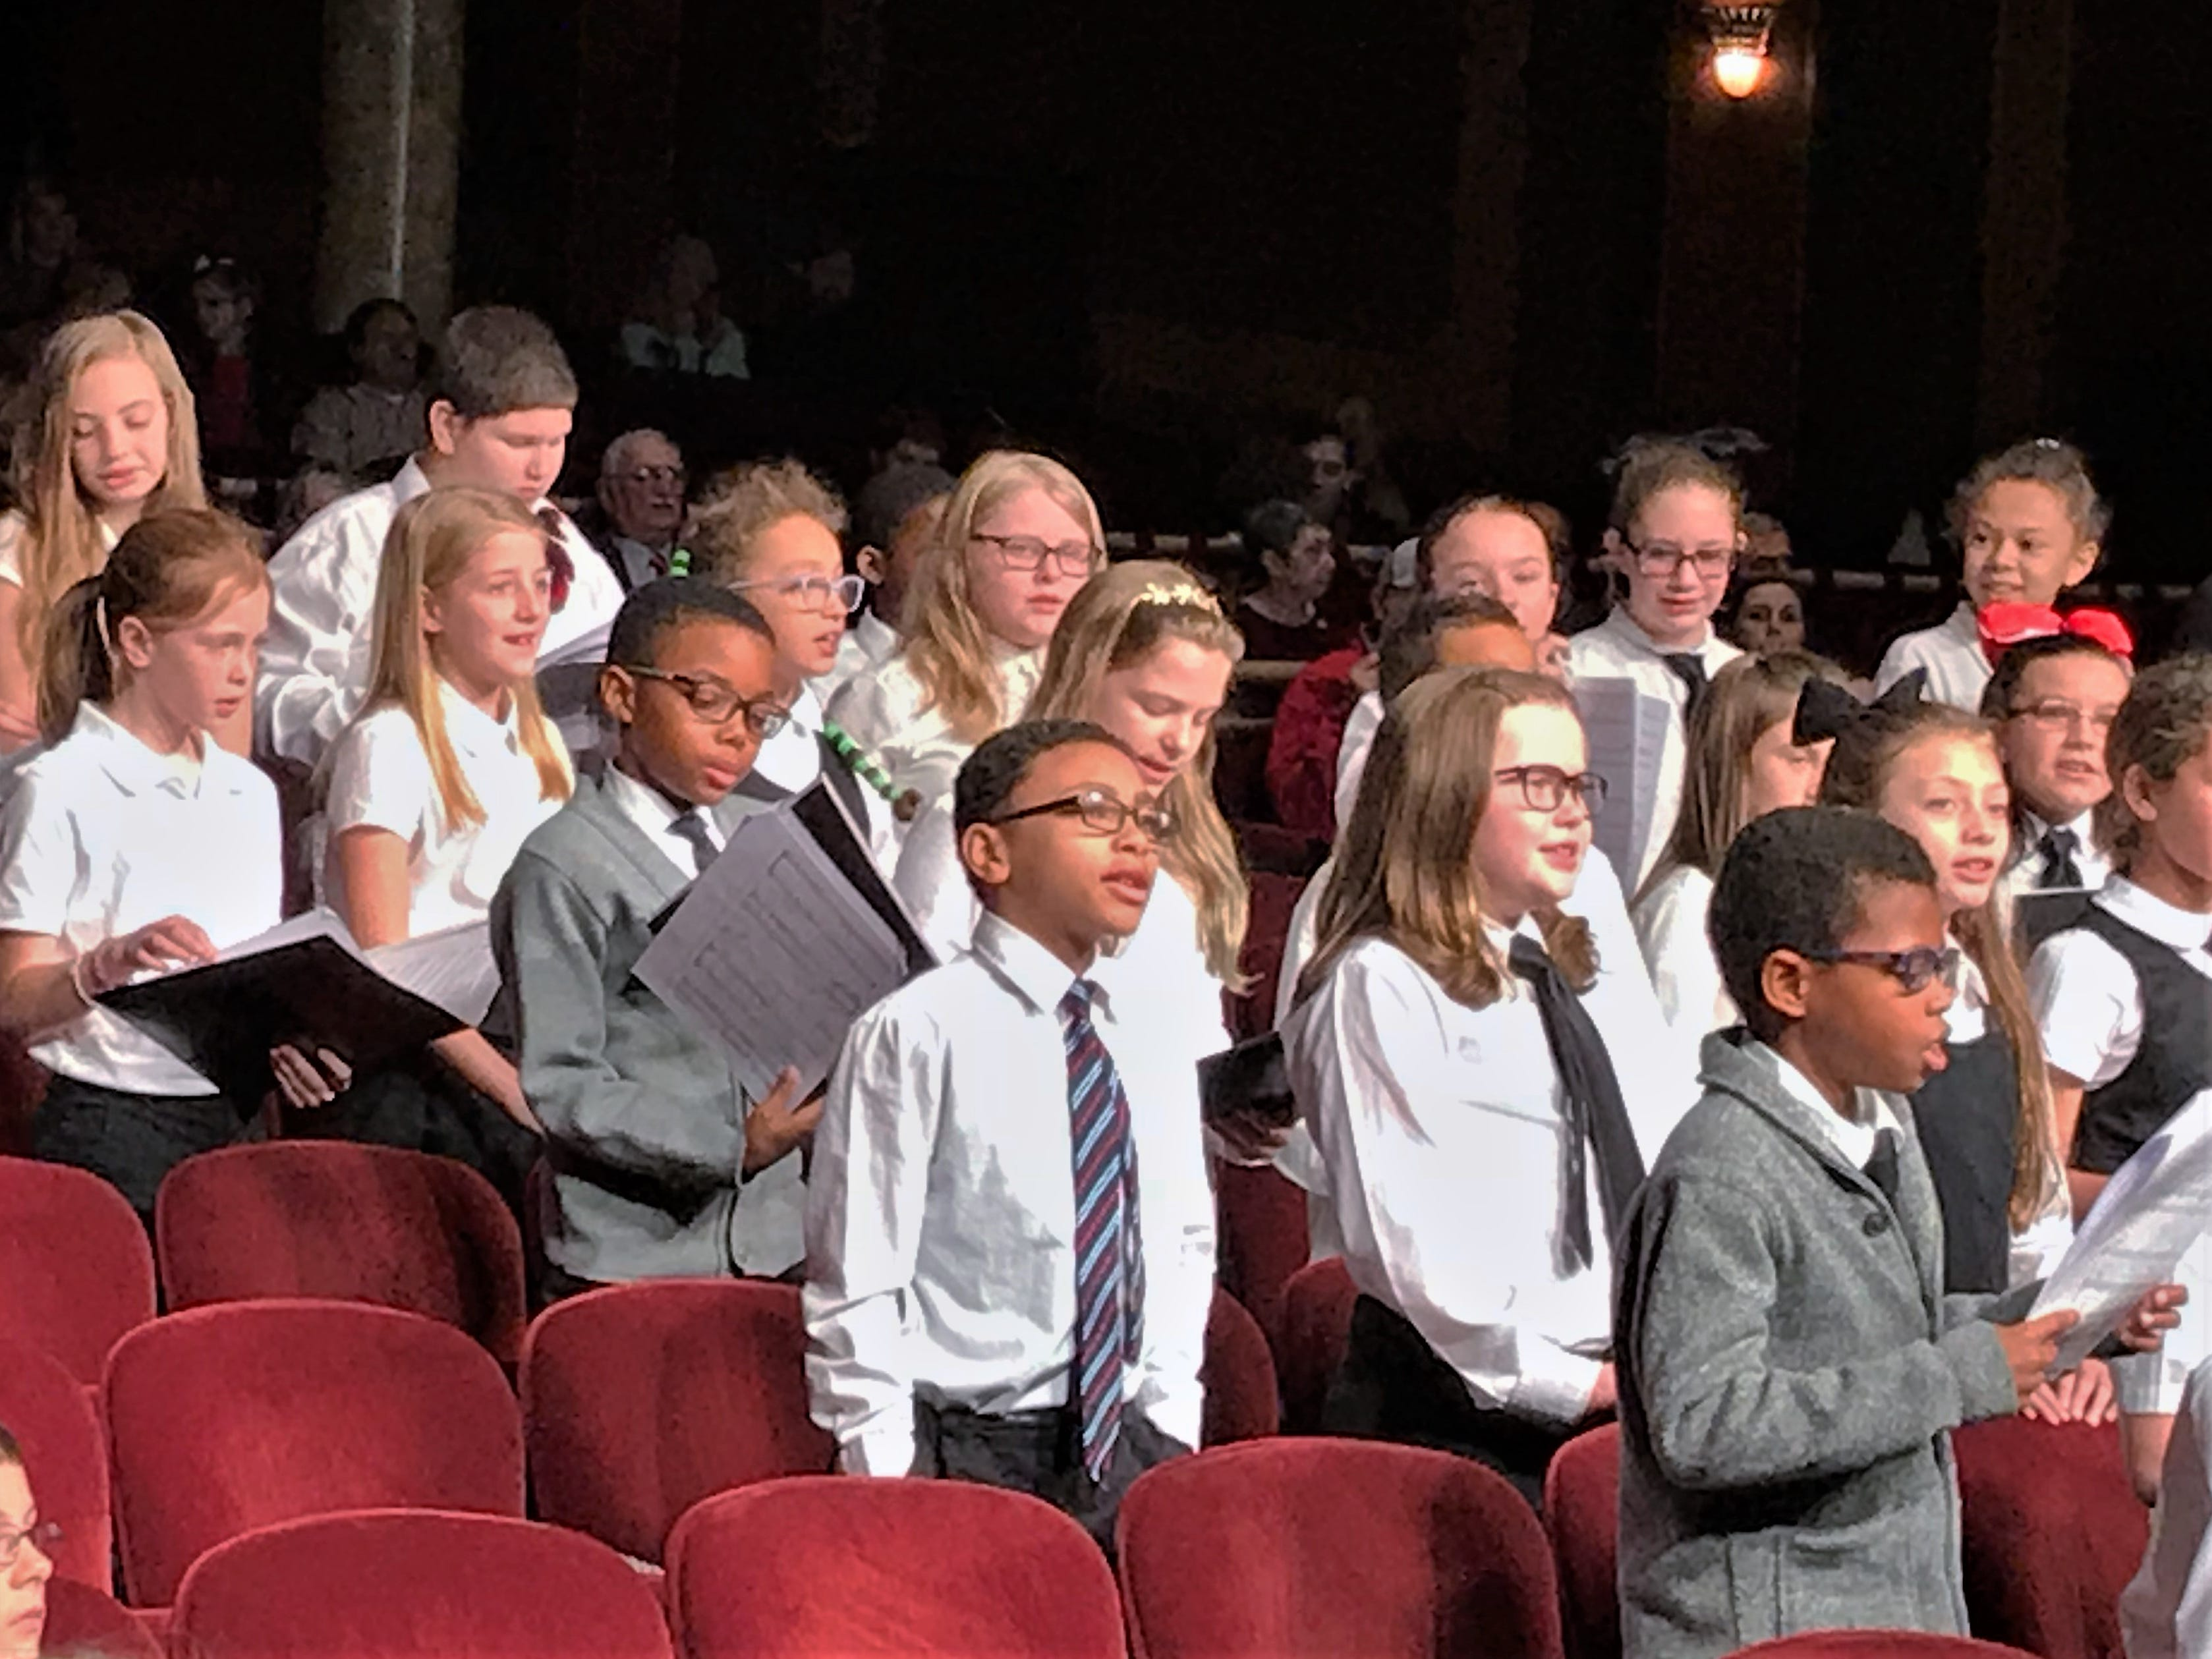 Finn Academy students perform a Christmas song during Sunday's Arctic League broadcast from the Clemens Center.